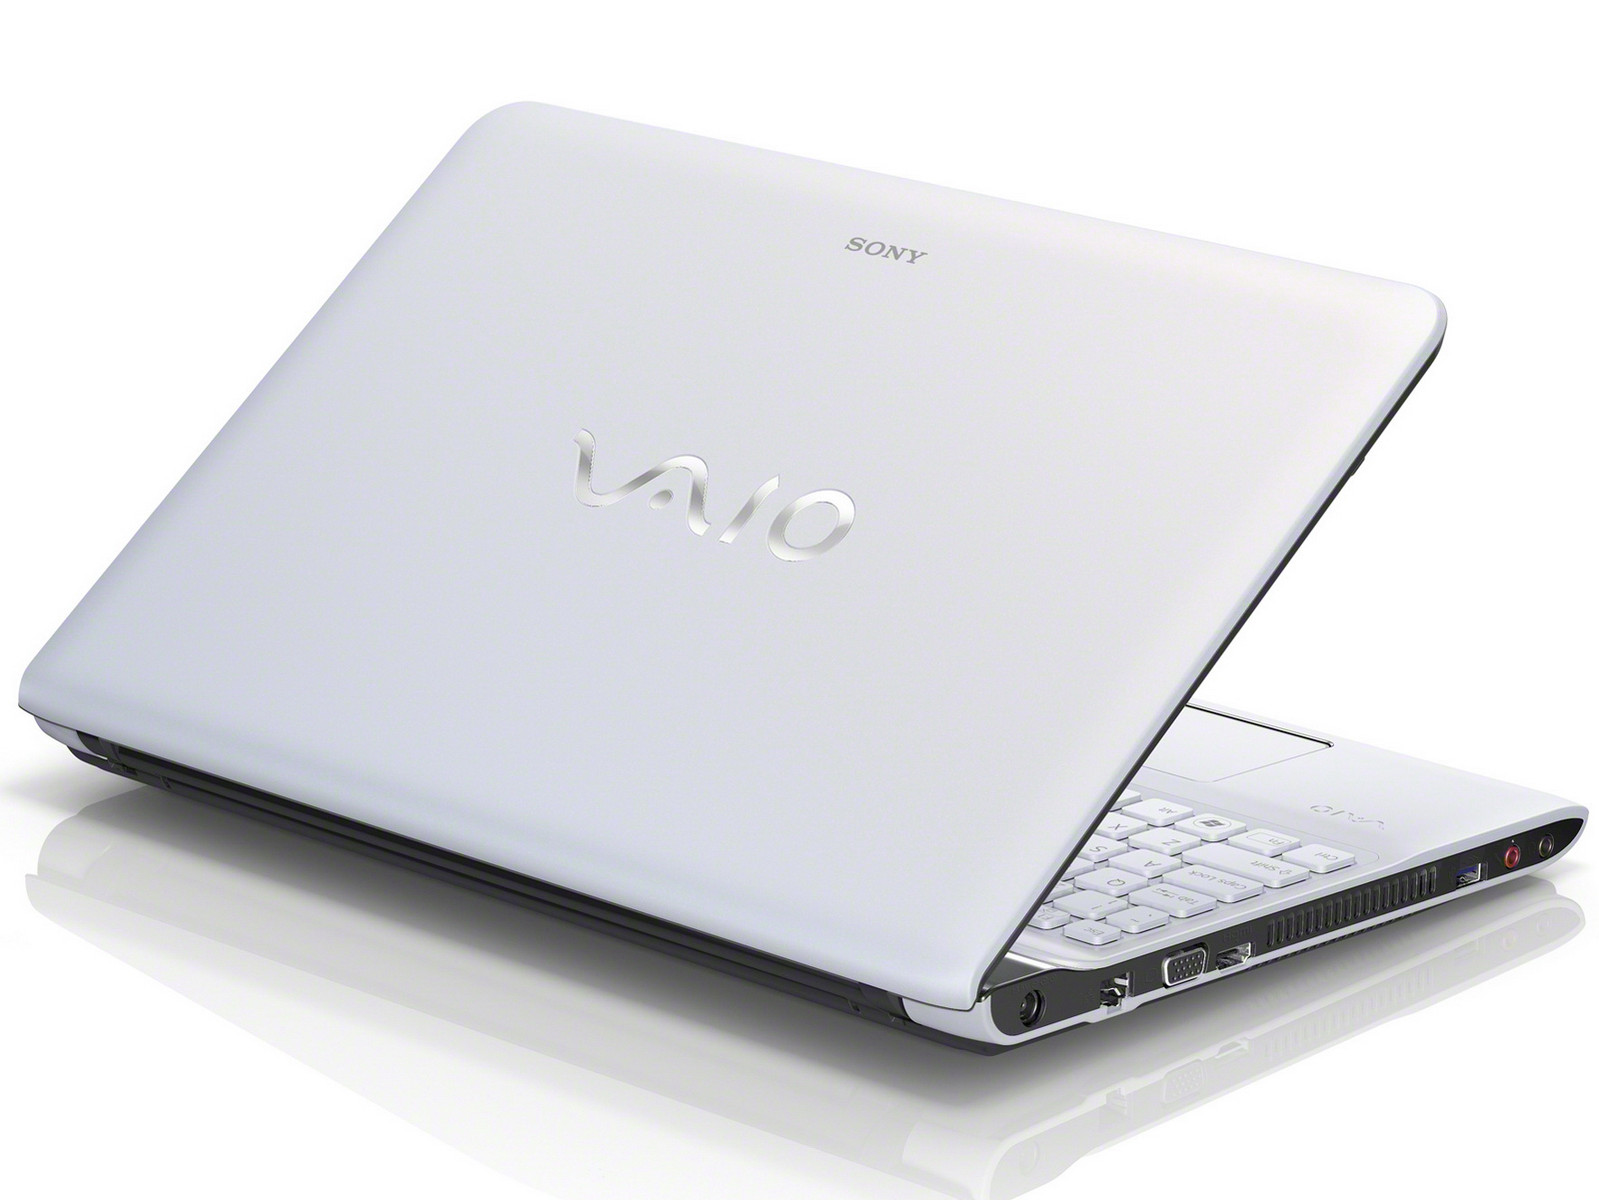 sony neue notebook modelle bei der vaio e serie 15 und 17 news. Black Bedroom Furniture Sets. Home Design Ideas